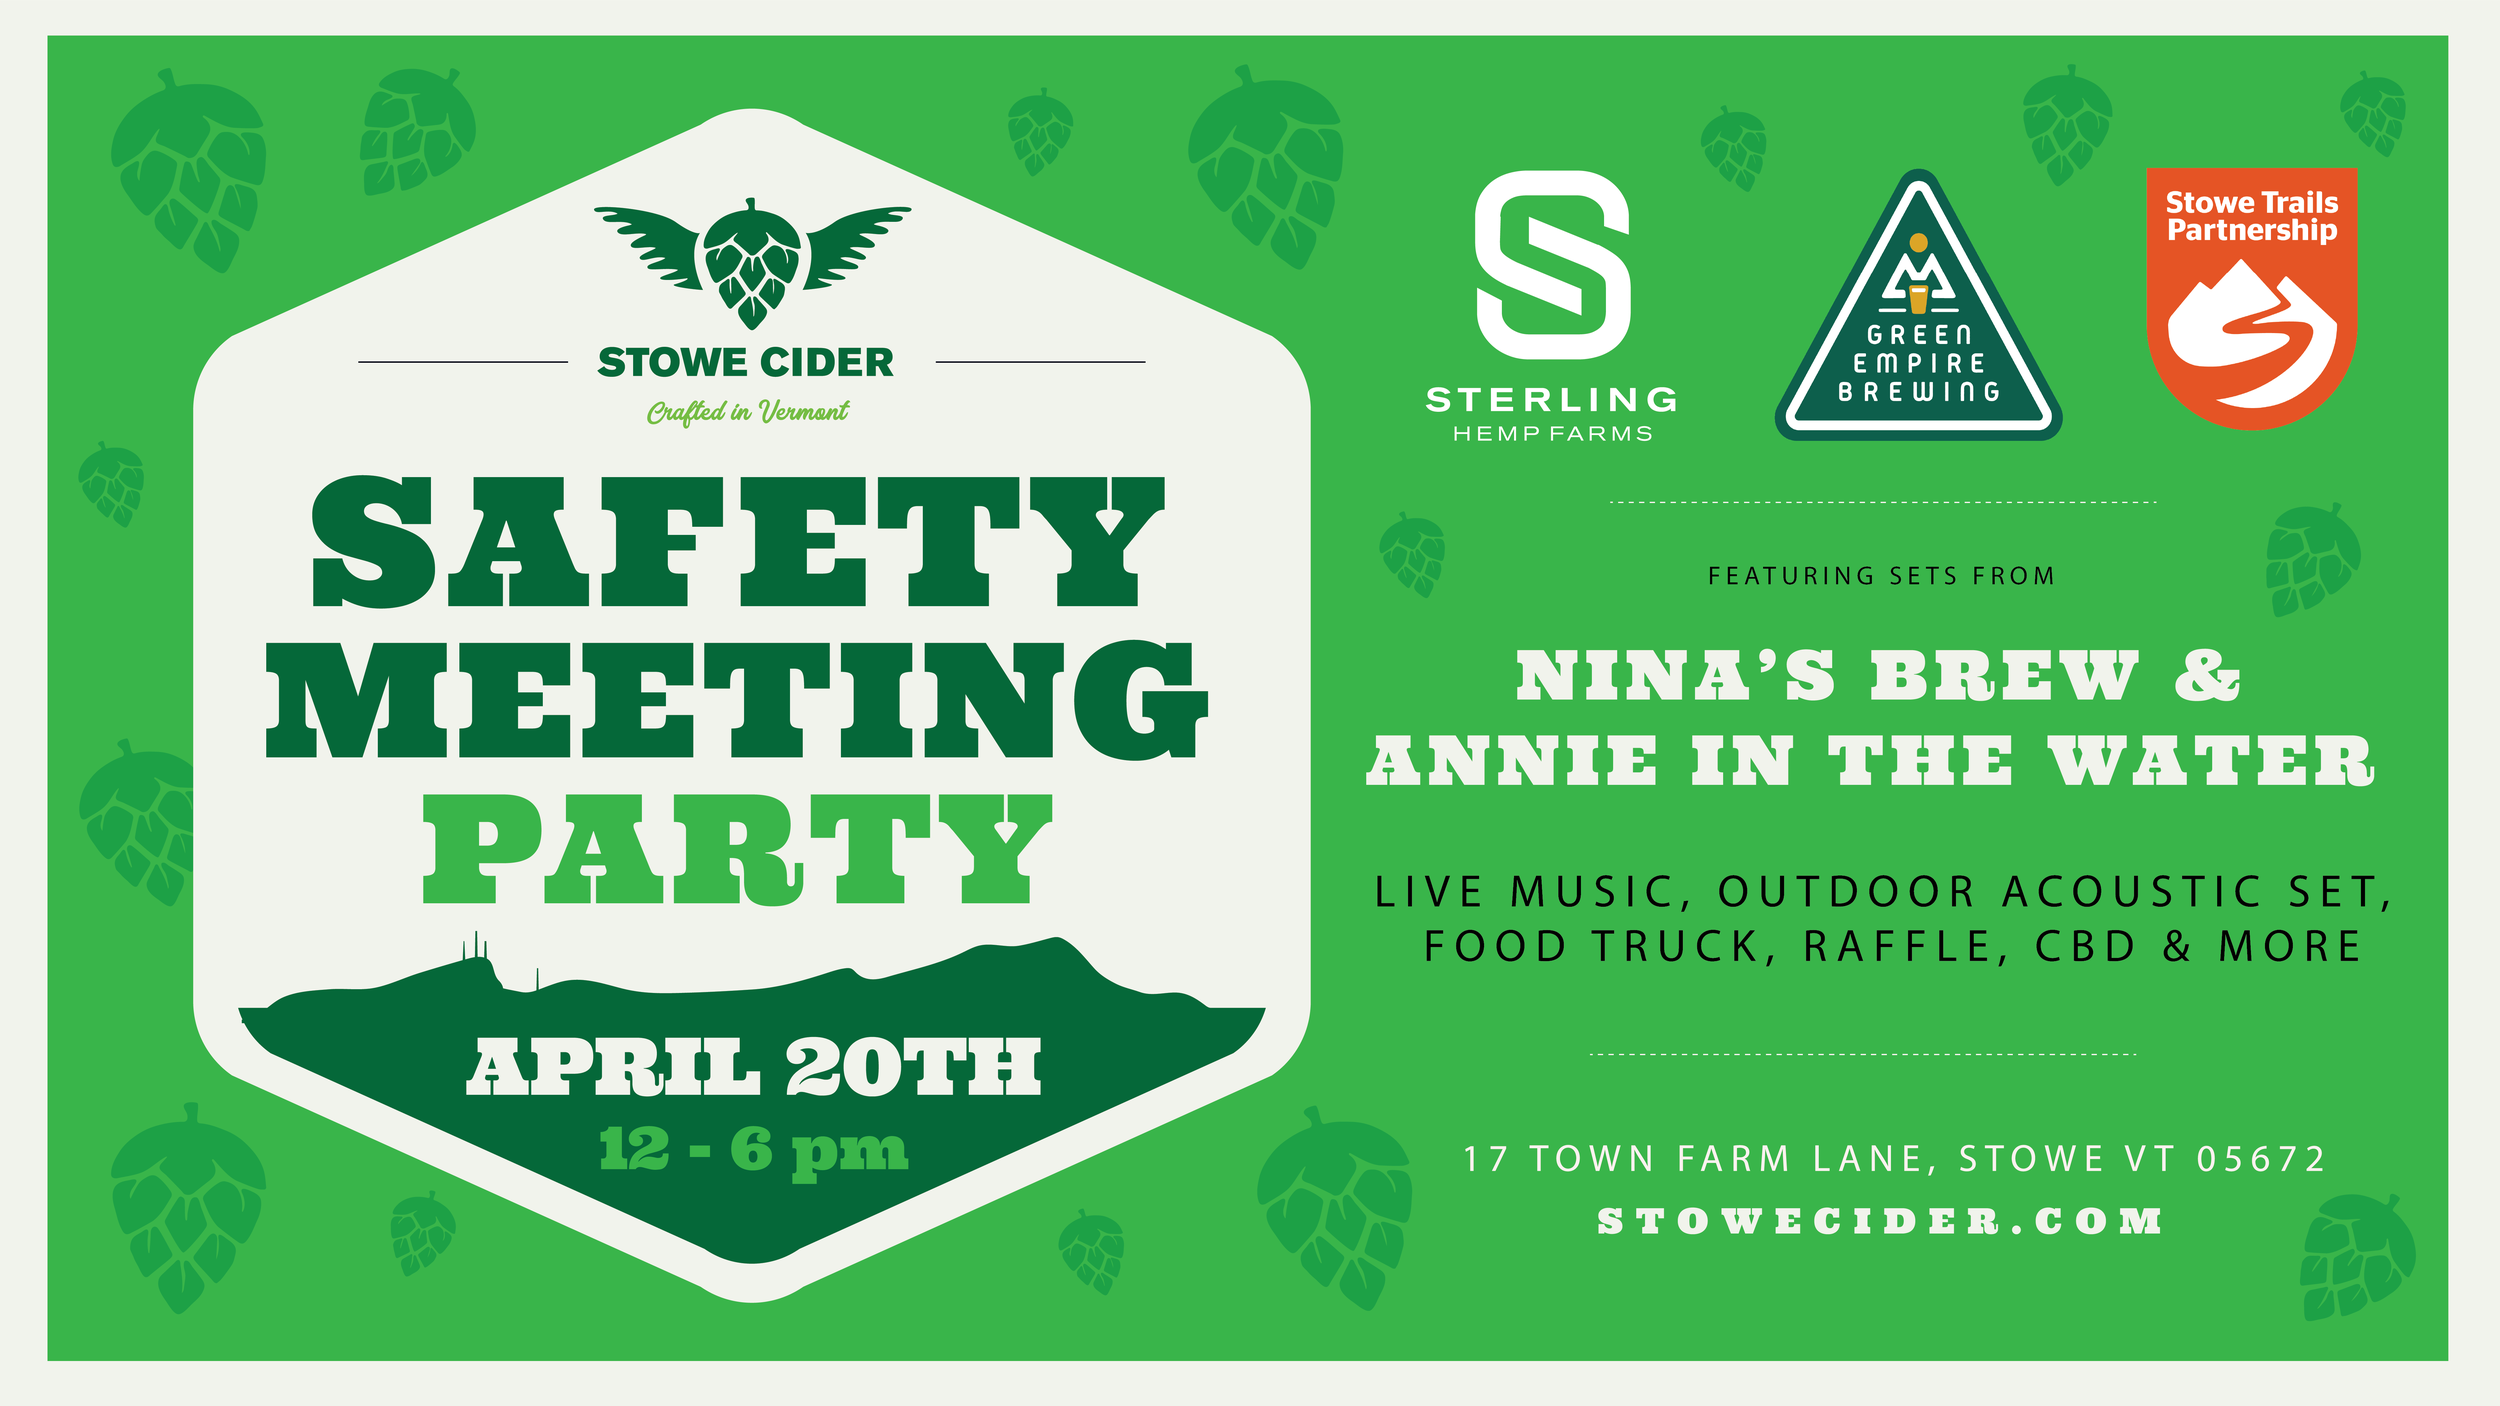 SafetyMeeting_Party_FB_Event_Graphic-01.png